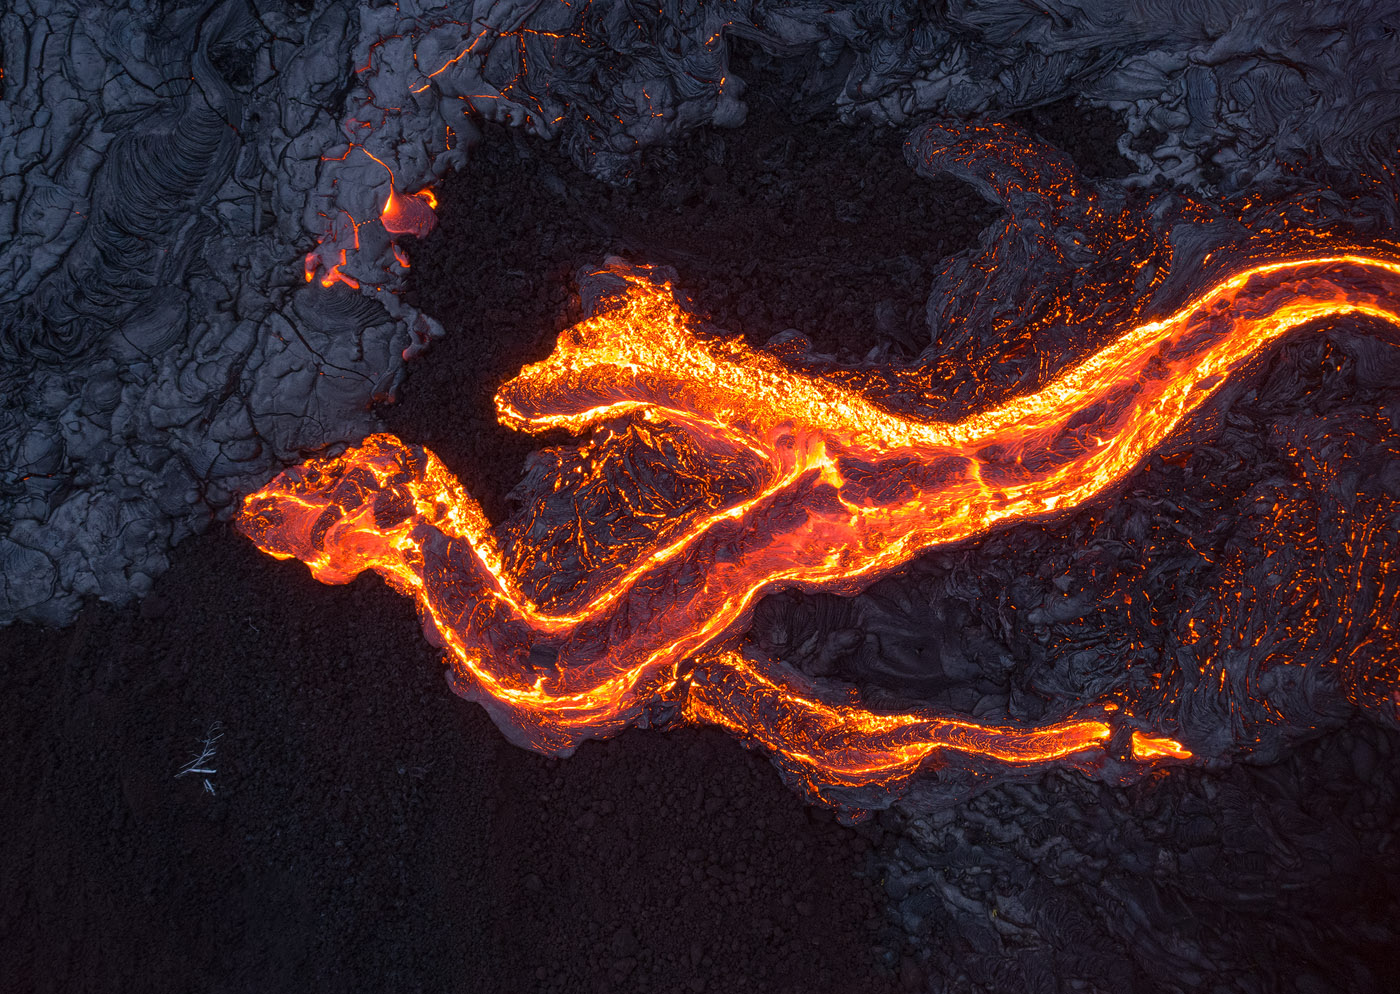 Shooting Kīlauea Volcano, Part 1: How to melt a drone